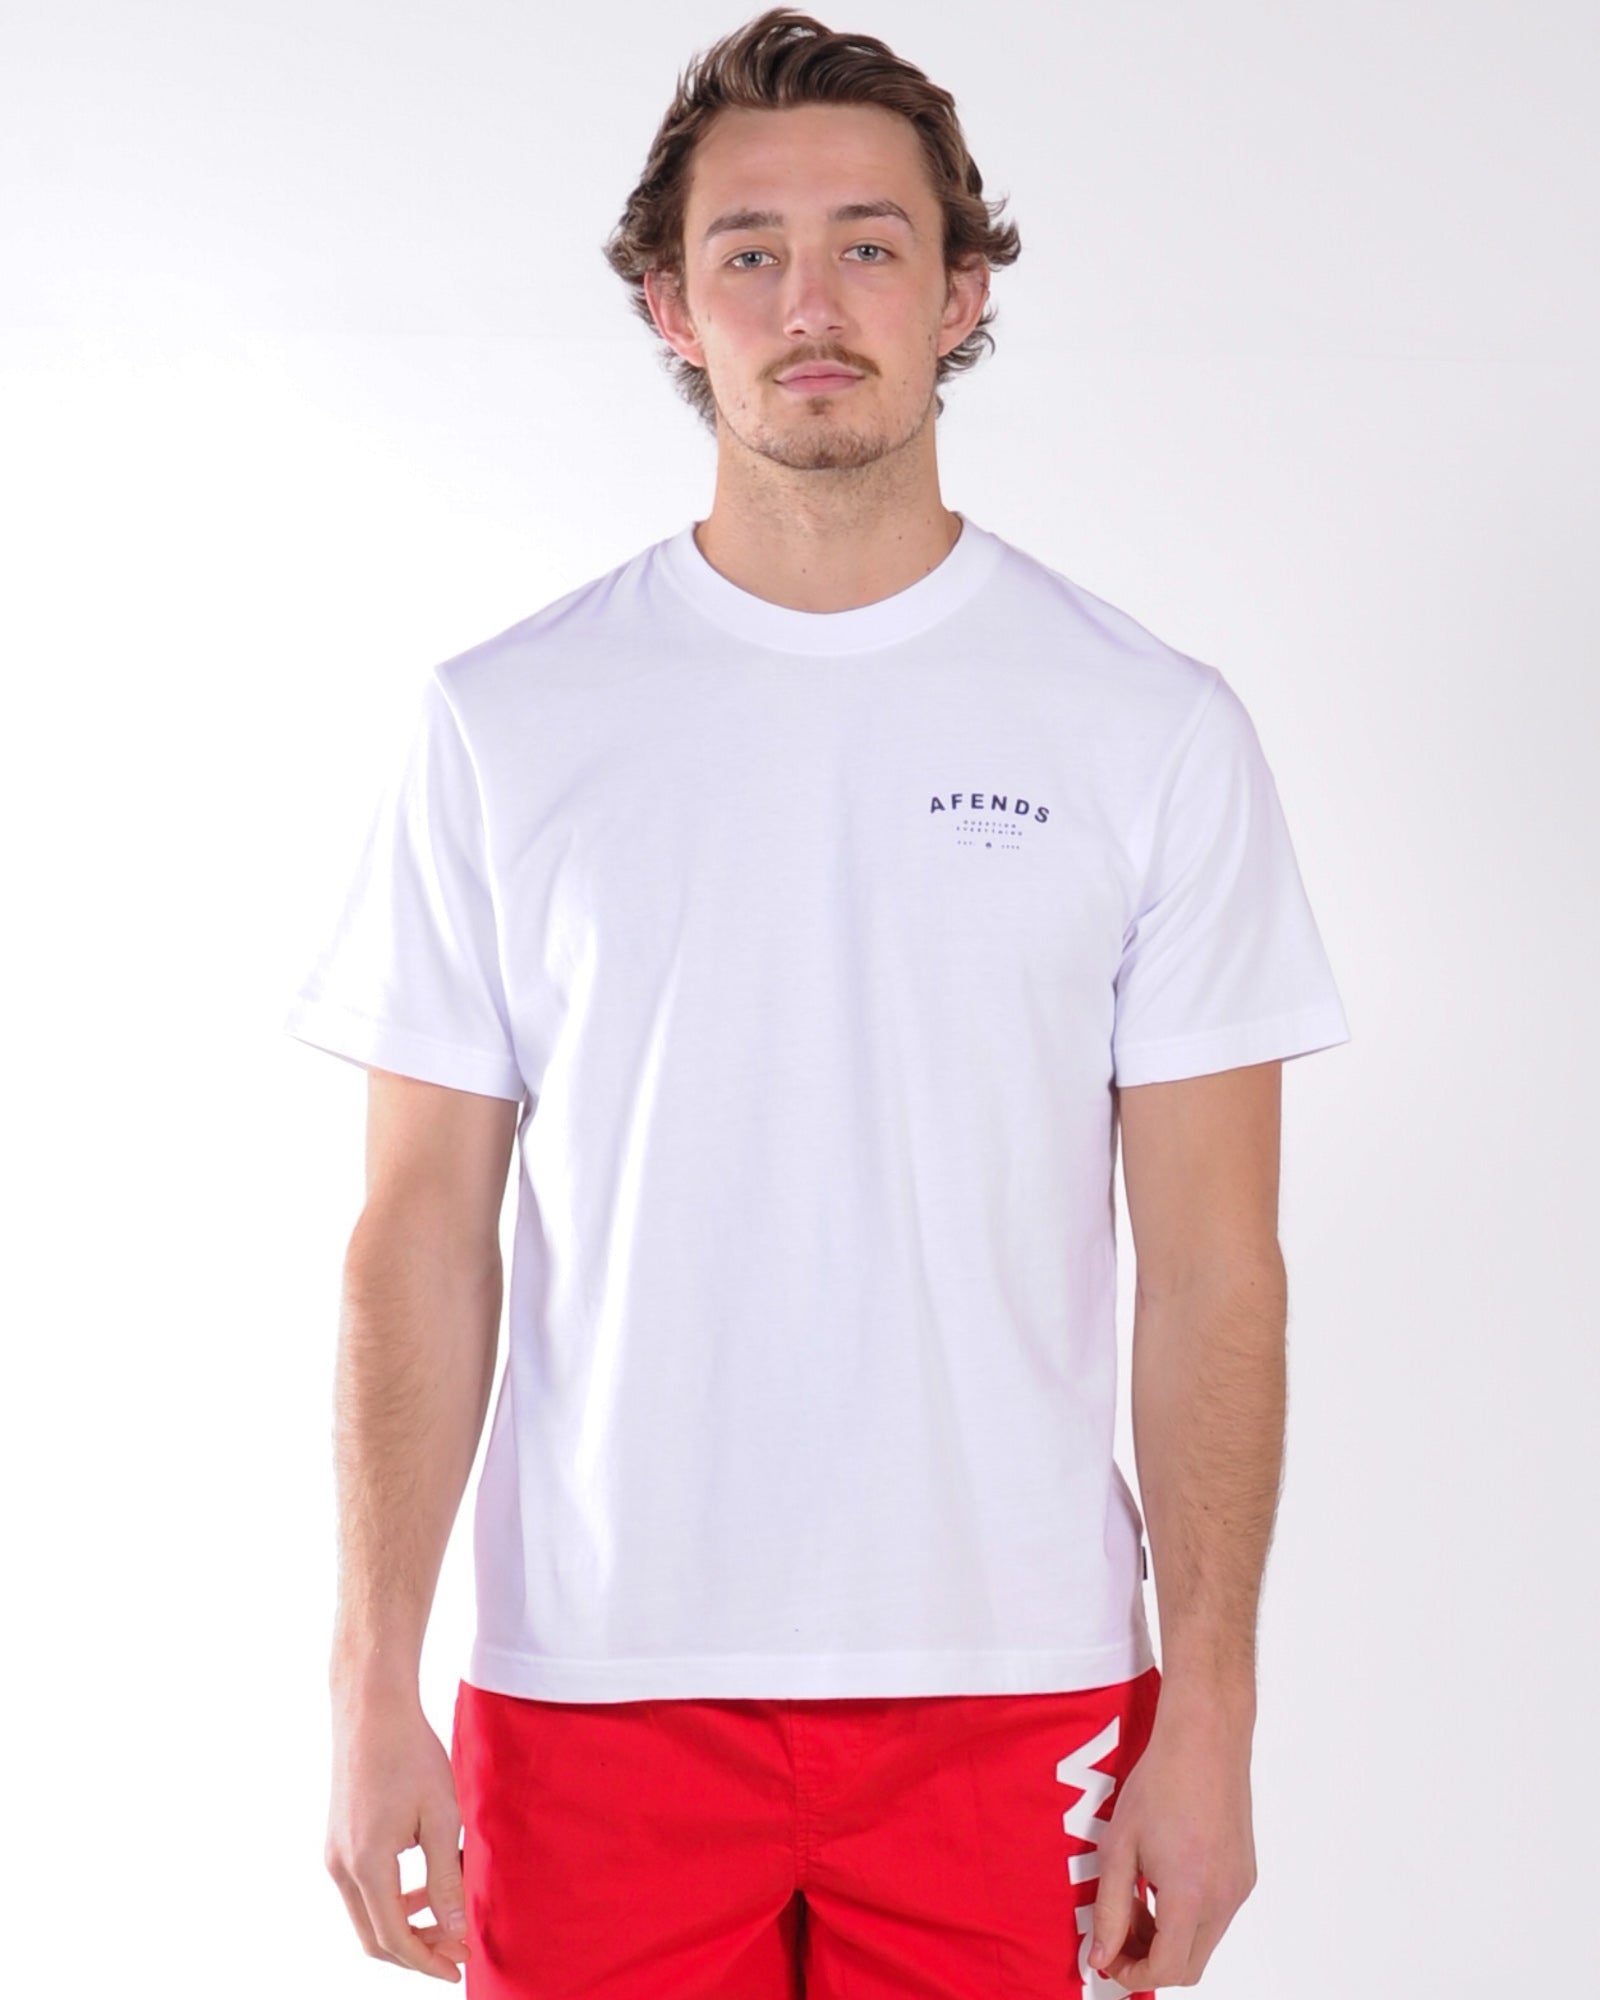 Afends Still Here Retro Fit Tee - White